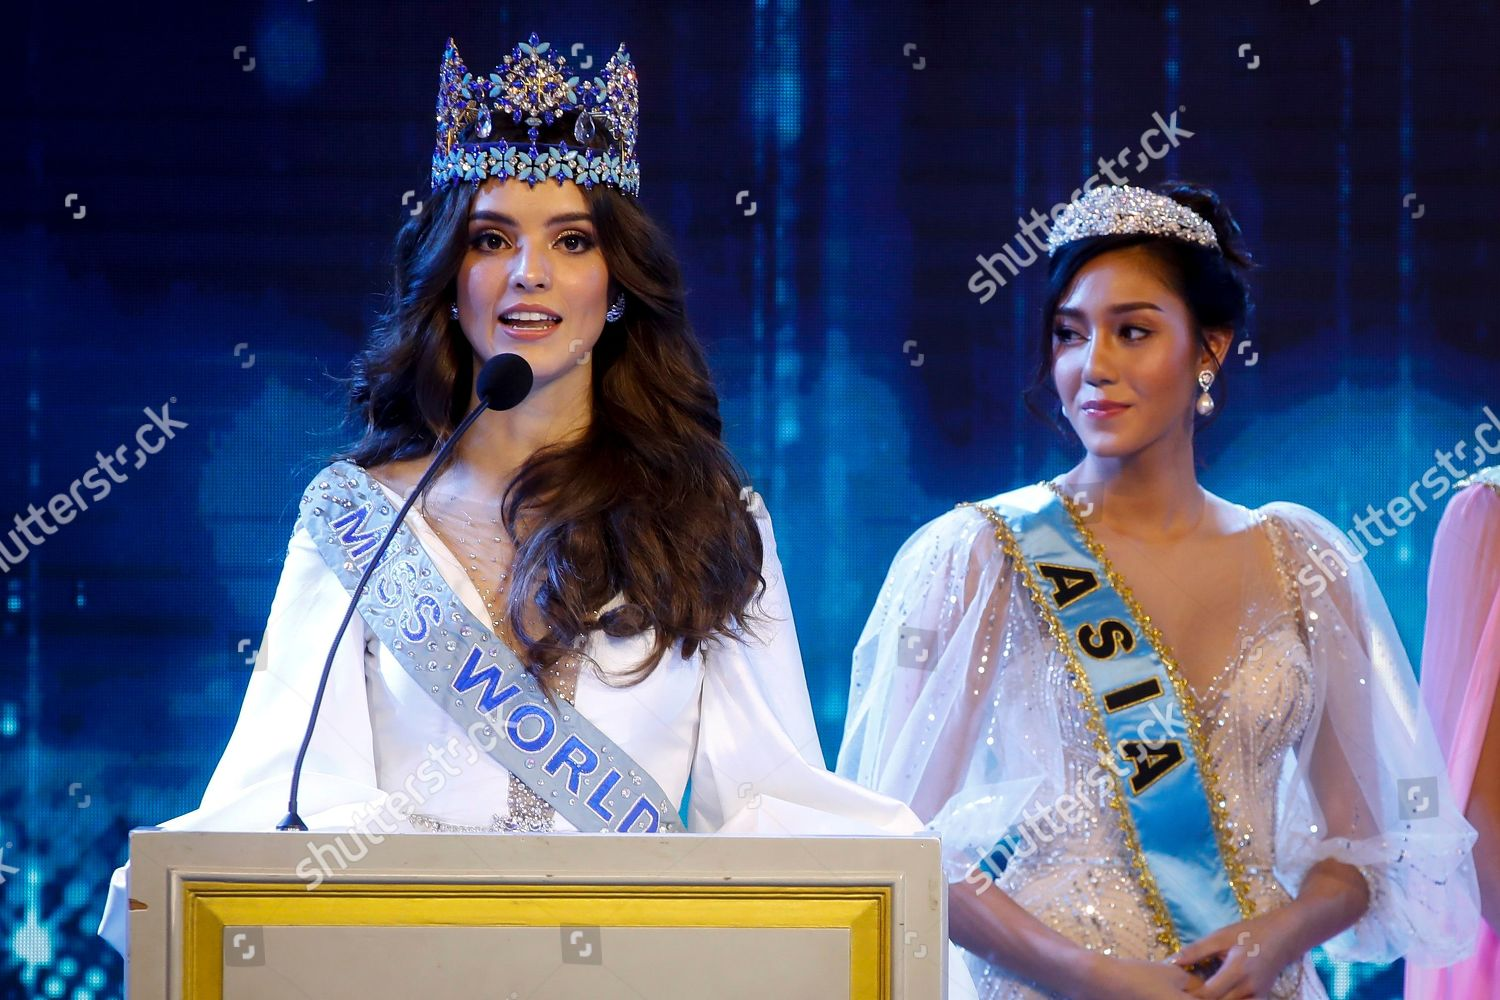 thailand-to-host-miss-world-2019-contest